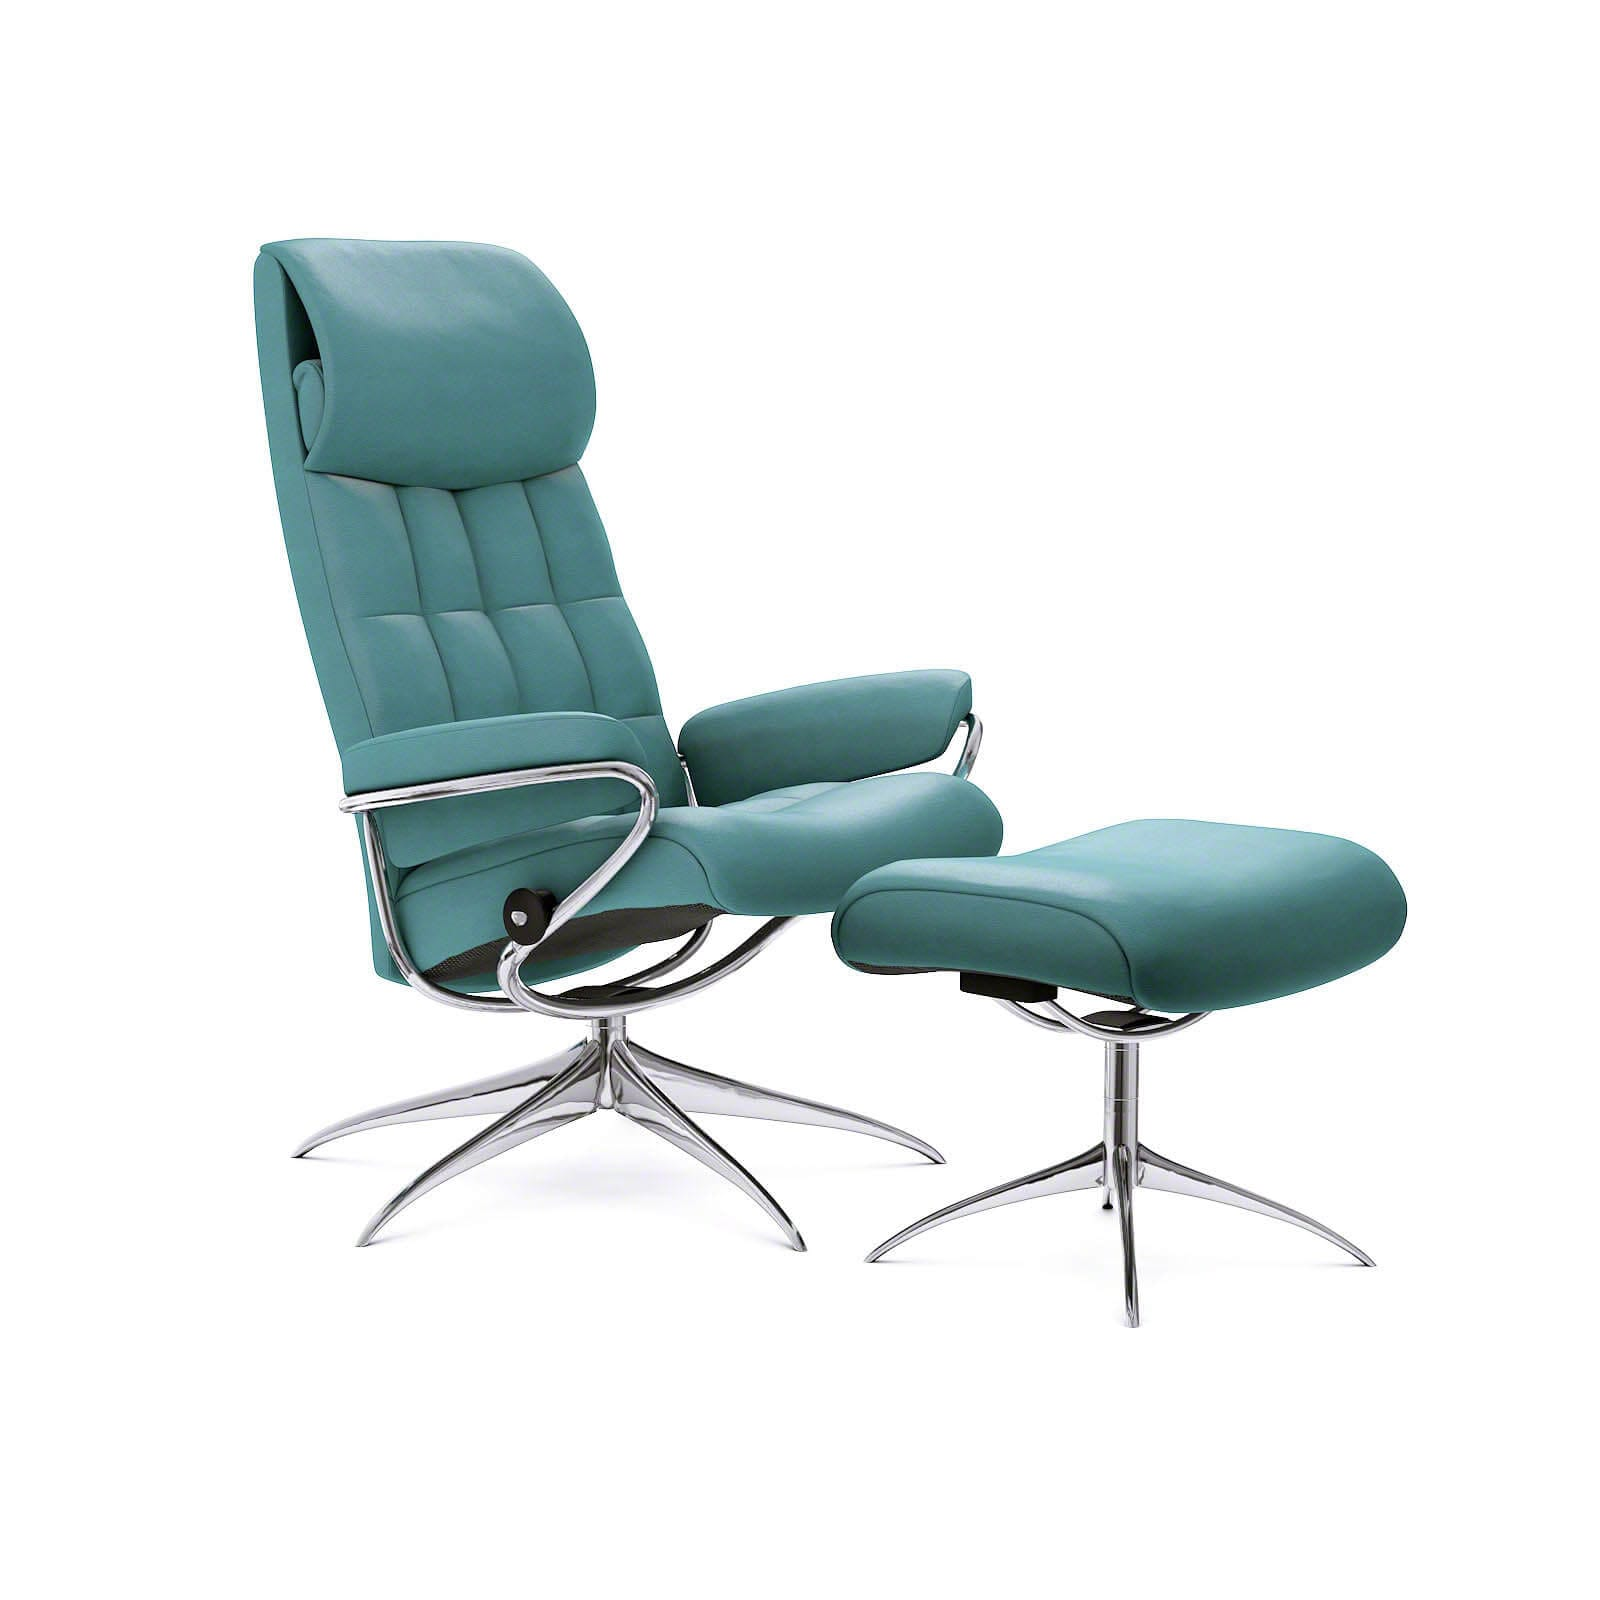 Stressless Sessel Höffner Stressless London Sessel Mit Hoher Lehne Paloma Aqua Green